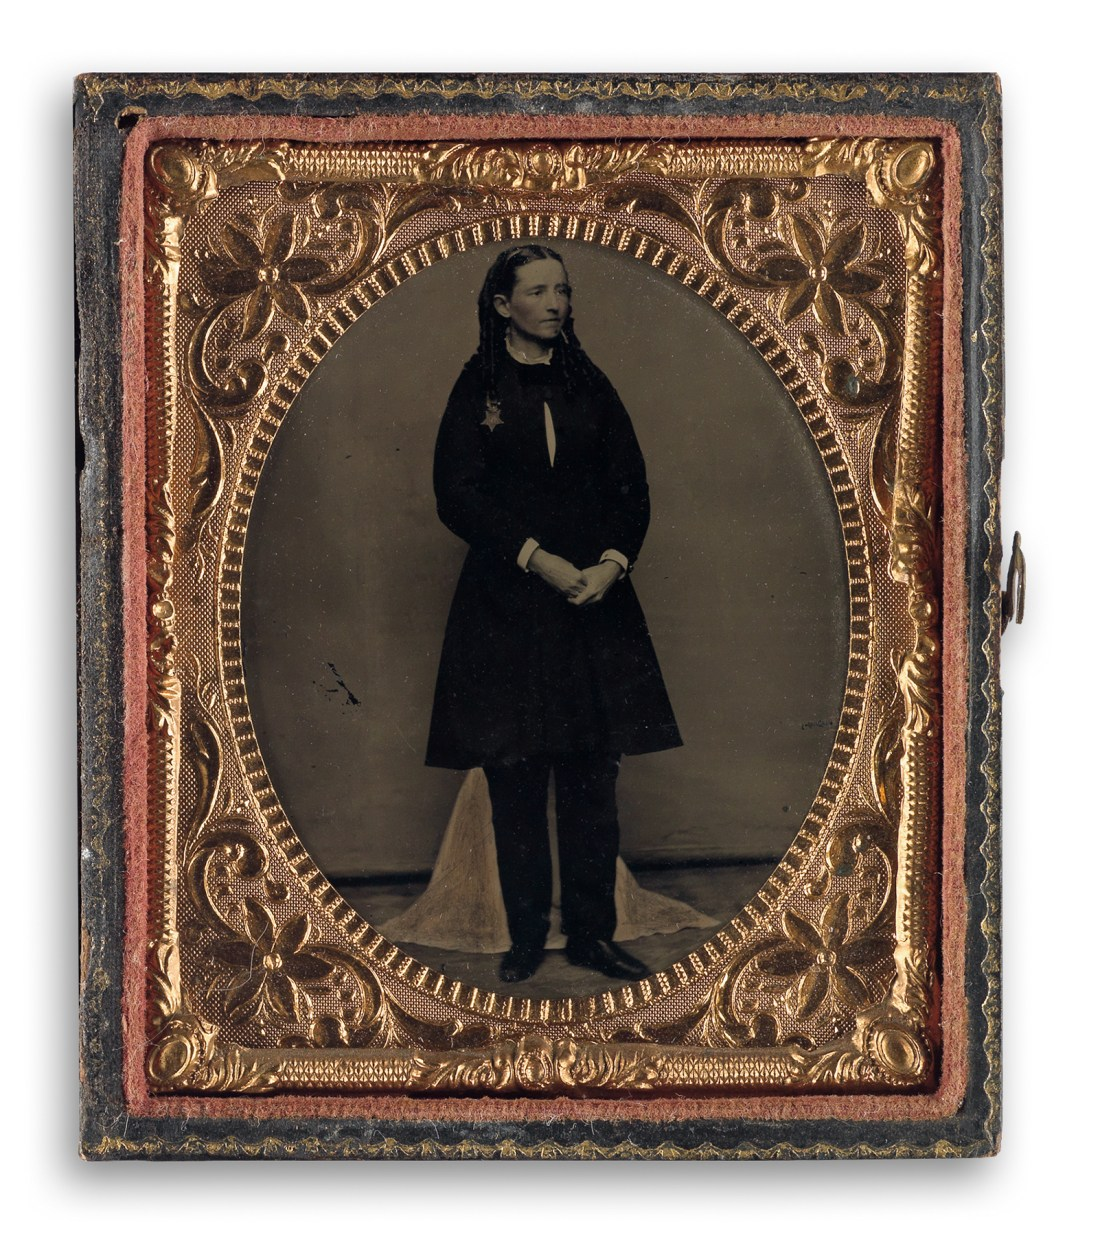 In this circa 1865 tintype, American physician Mary Edwards Walker wears her Medal of Honor. It appears on the upper left of her chest. She wears matching trousers under her black dress. She's depicted in three-quarter view, looking to the right, with her hands clasped.